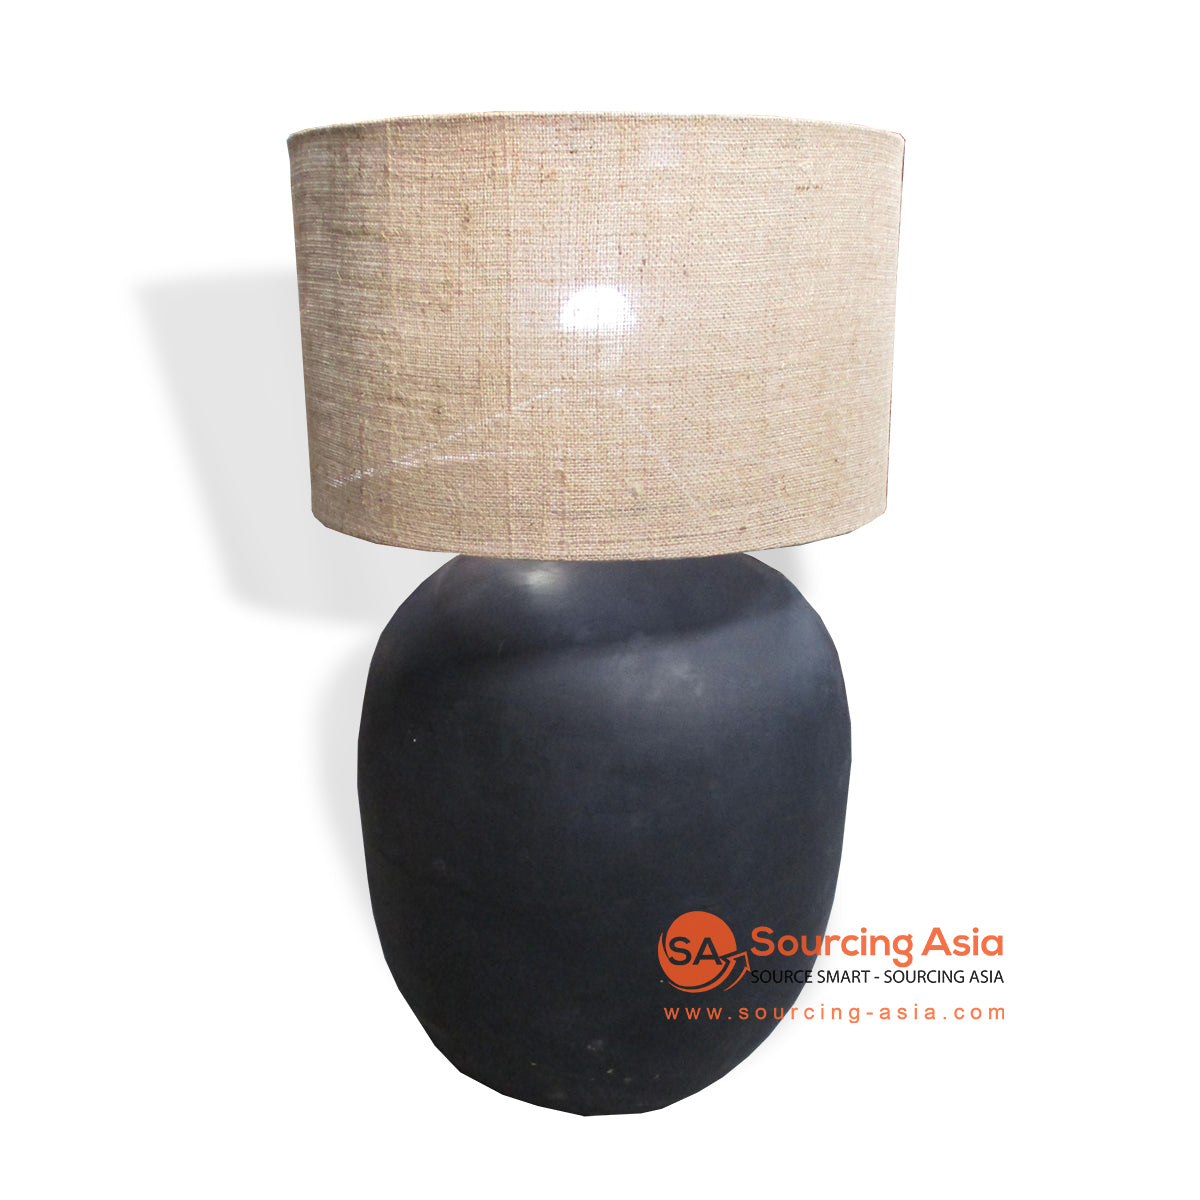 JNP-S40X25 LAMP WITH SHADE